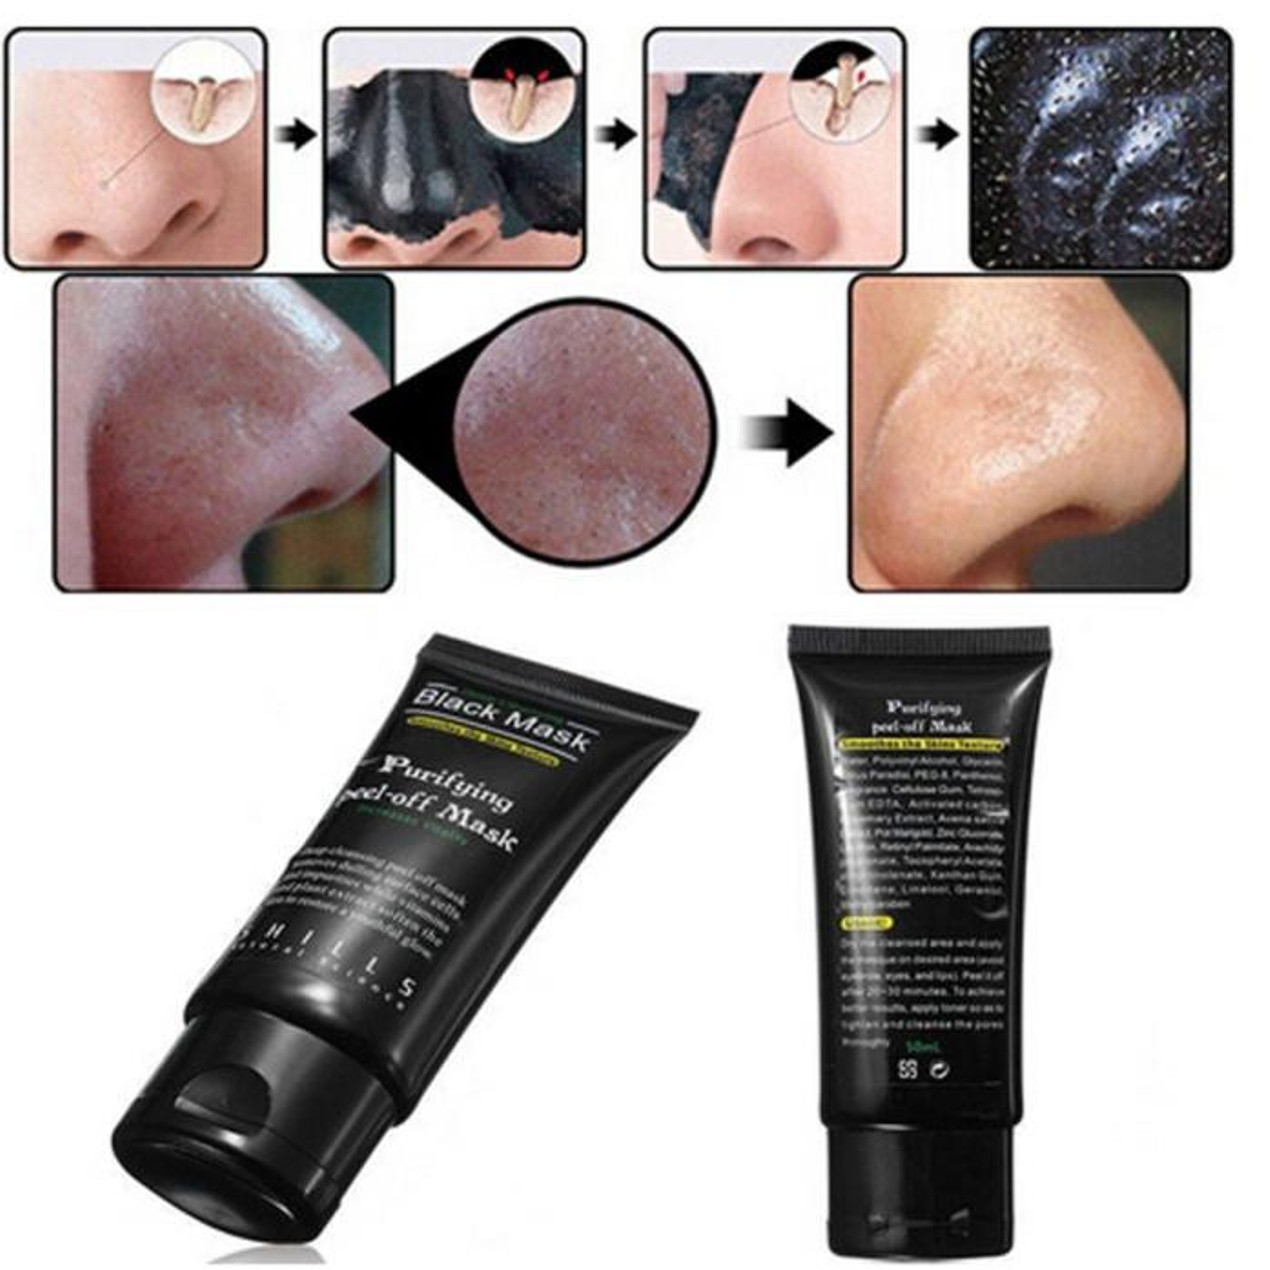 ... Black Mud Cleansing Face Mask Remove Blackhead Facial Mask